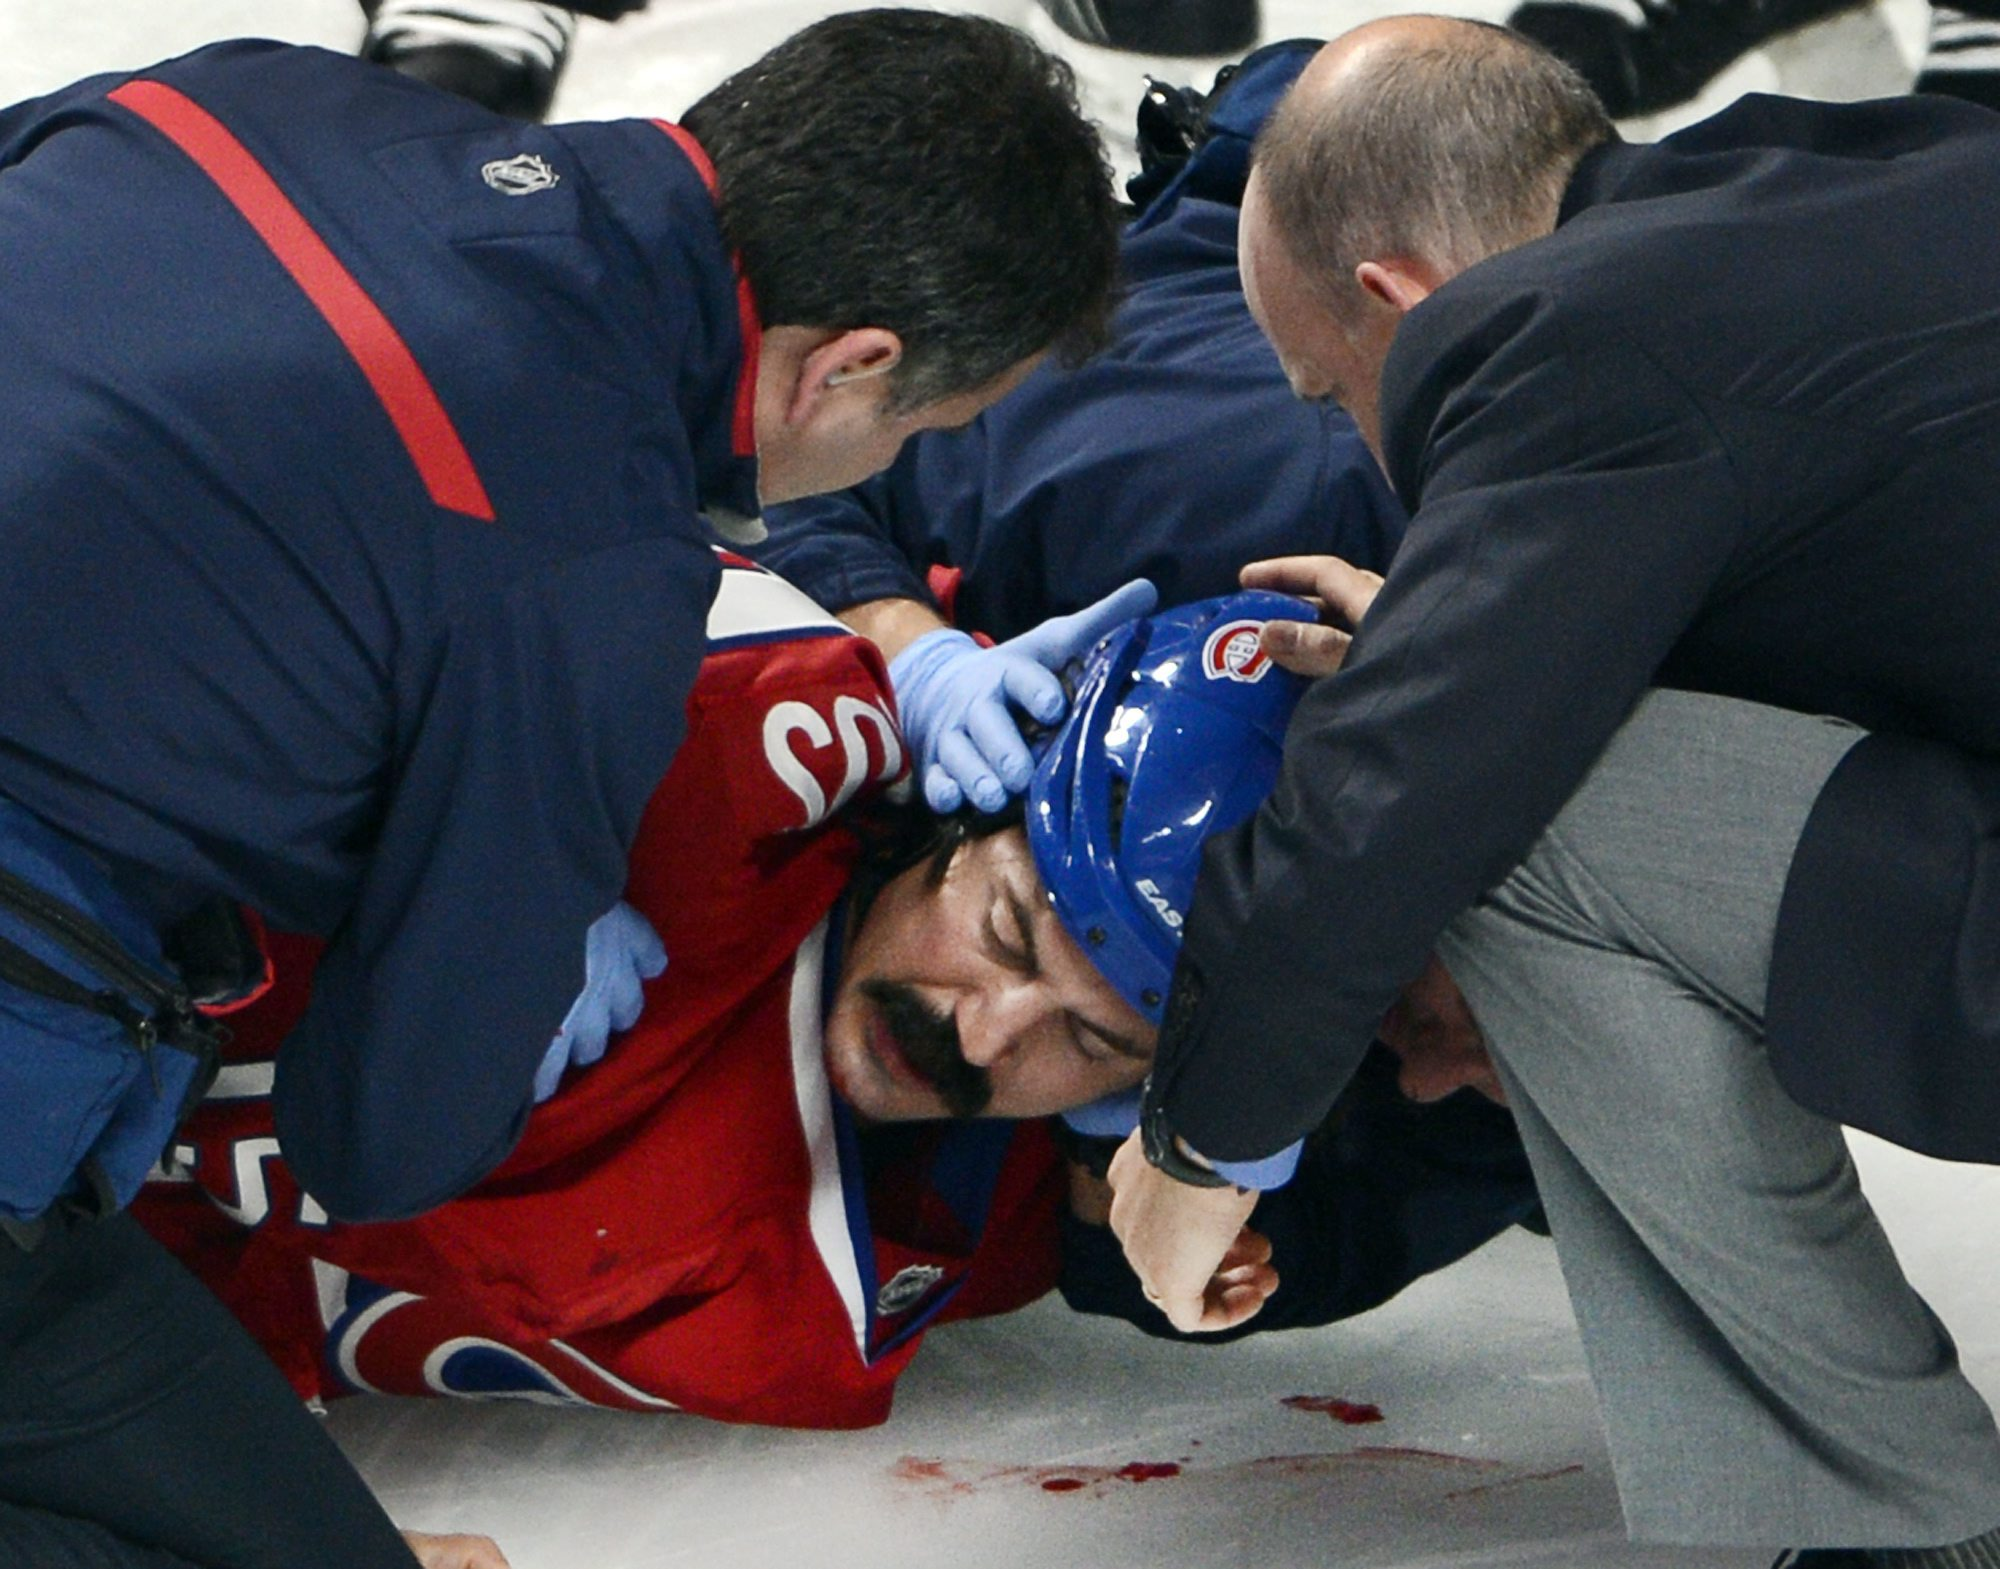 In this Oct. 1, 2013 photo, Montreal Canadiens winger George Parros (15) is treated by medical staff after he hit his head on the ice during a fight with Toronto Maple Leafs right wing Colton Orr during third period NHL action in Montreal. Parros sustained a concussion